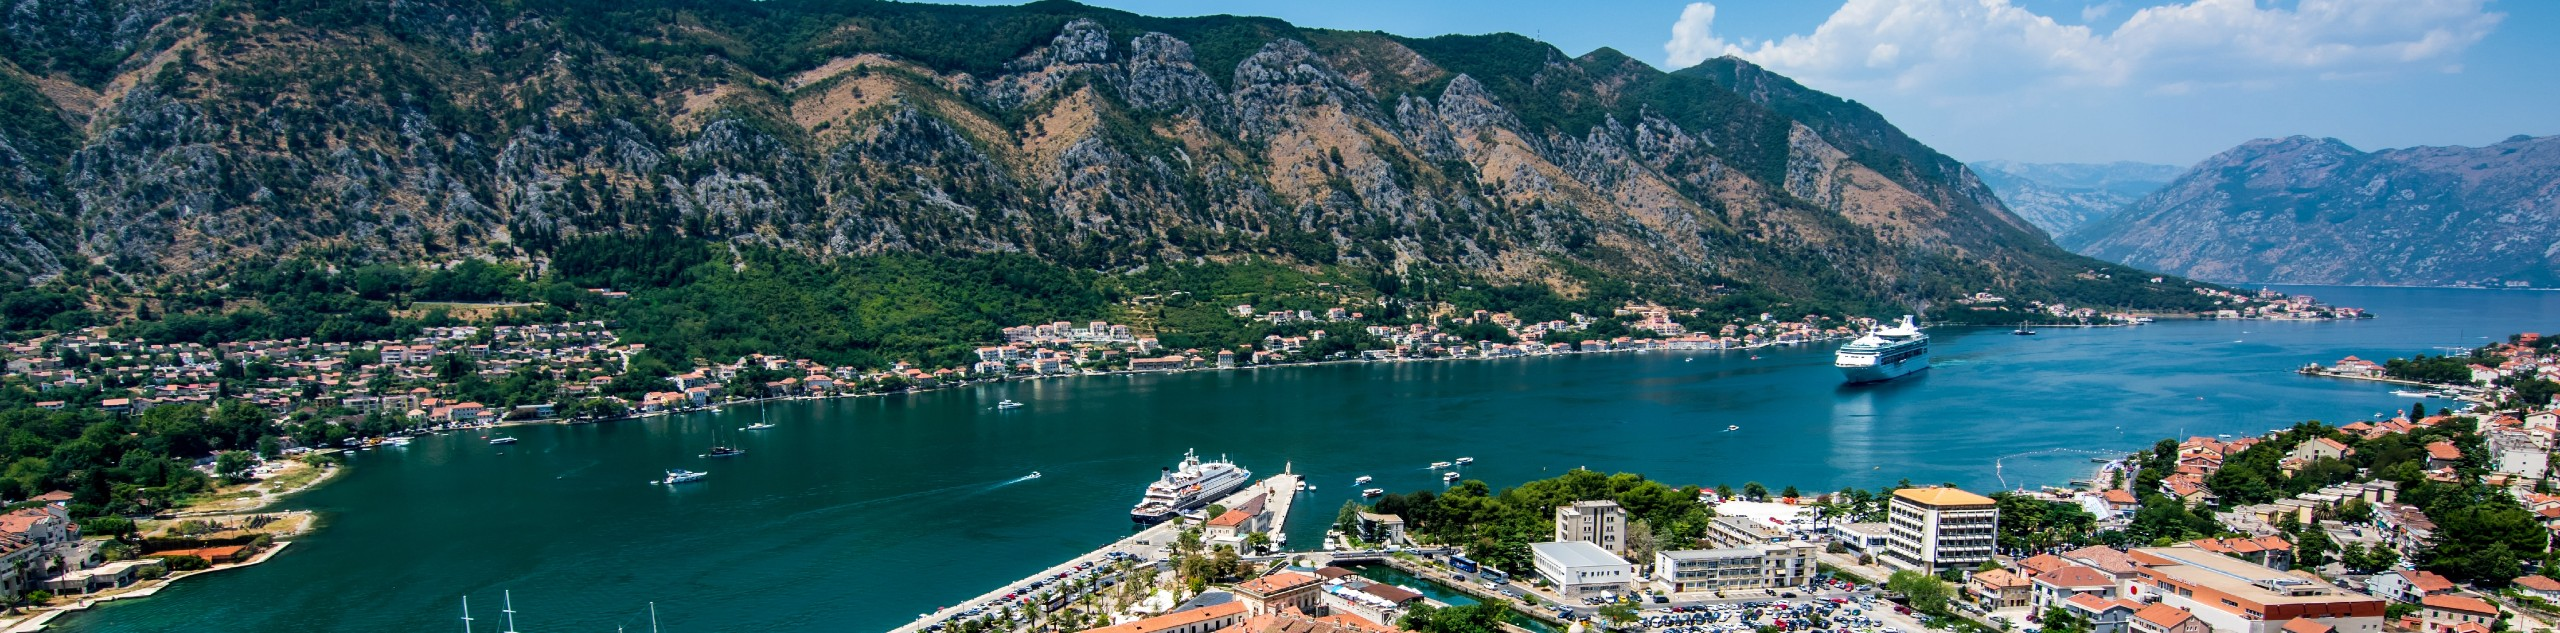 Cruise ship near one of the coastal towns of Montenegro